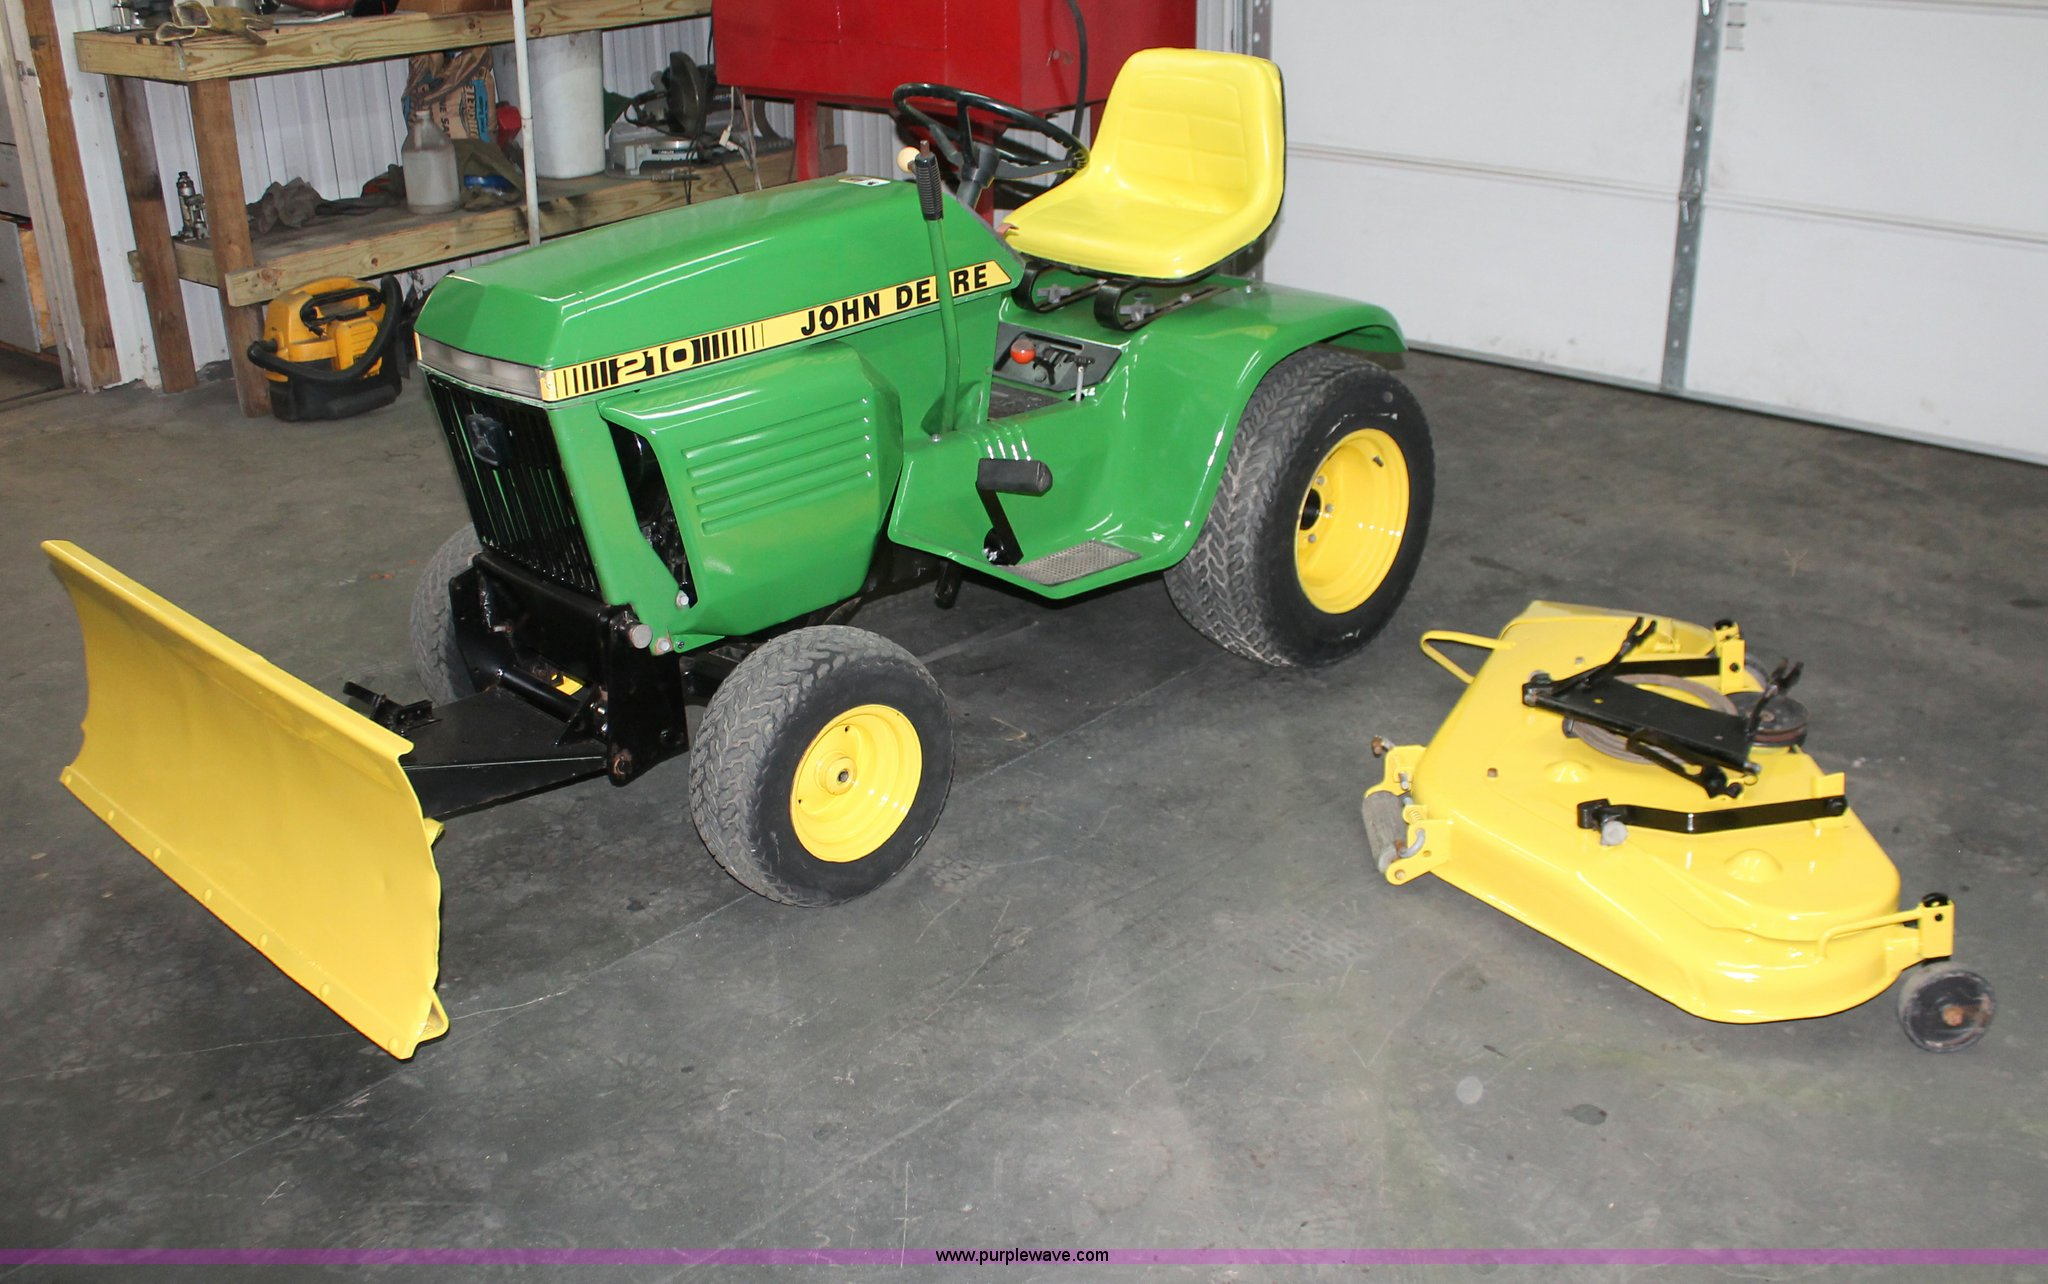 John deere 210 lawn mower item e2555 sold february 20 for Lawn tractor motors for sale